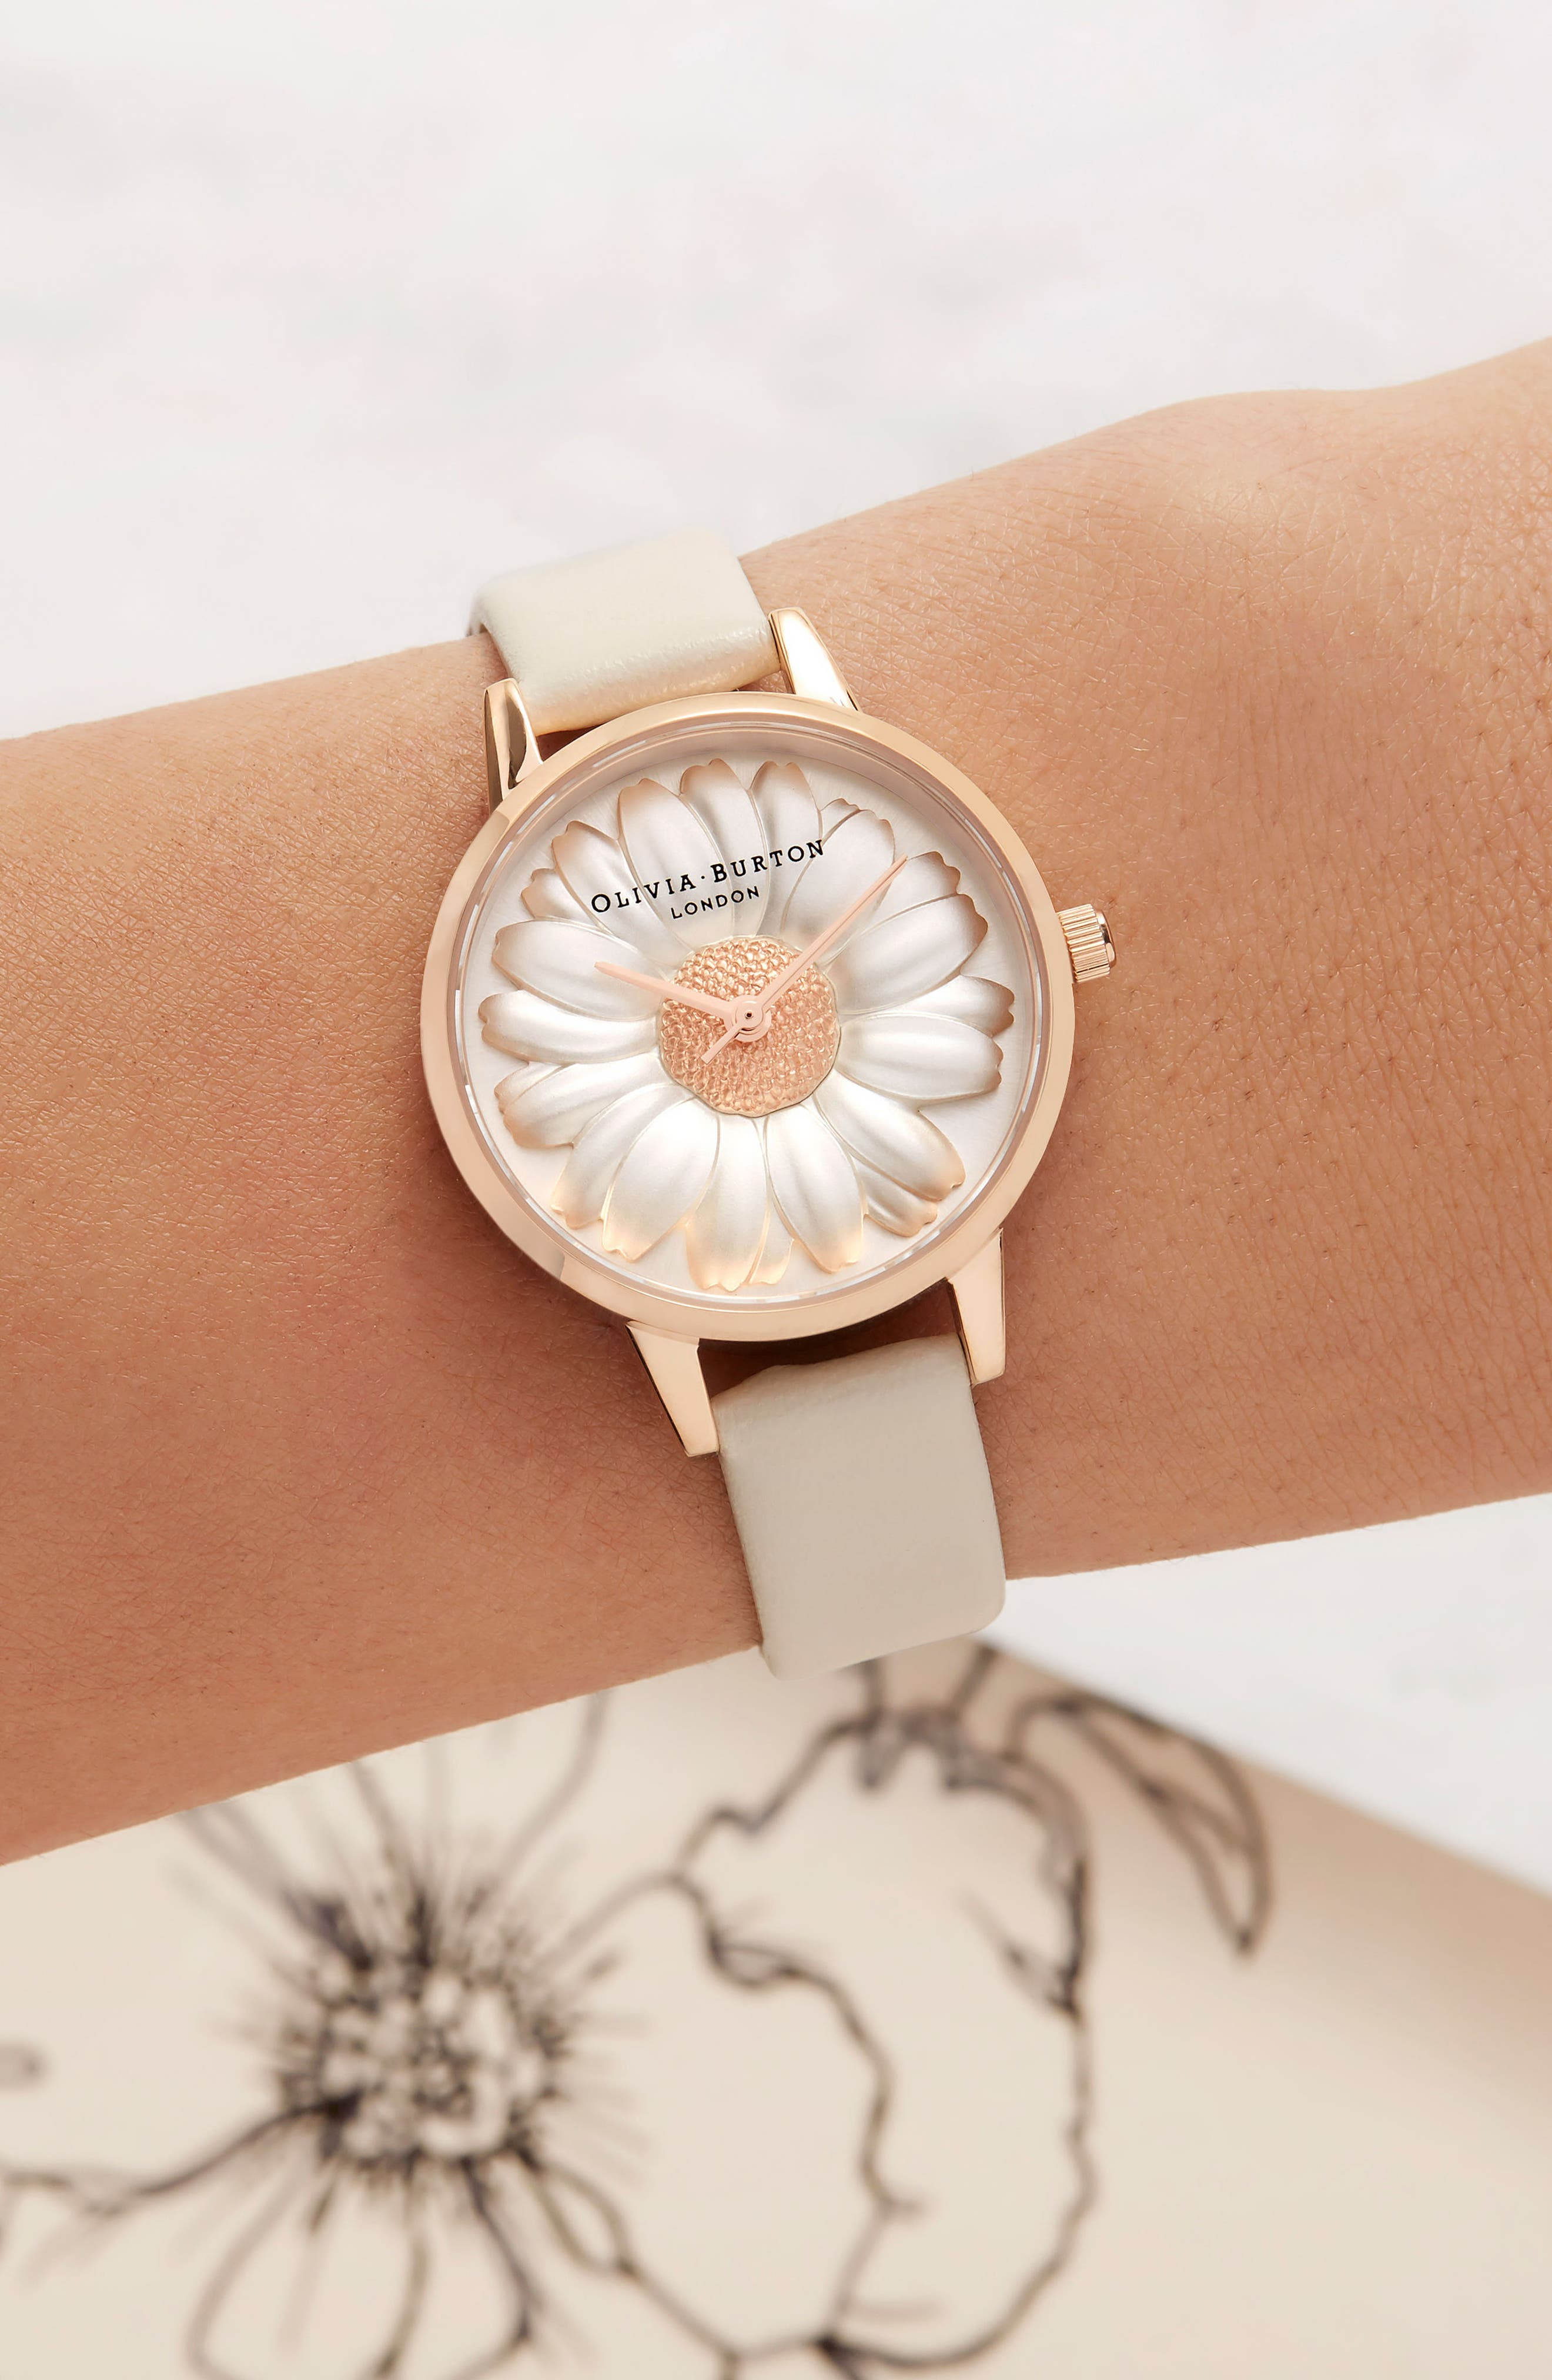 3D Daisey Faux Leather Strap Watch, 30mm,                             Alternate thumbnail 6, color,                             NUDE/ DAISY/ ROSE GOLD